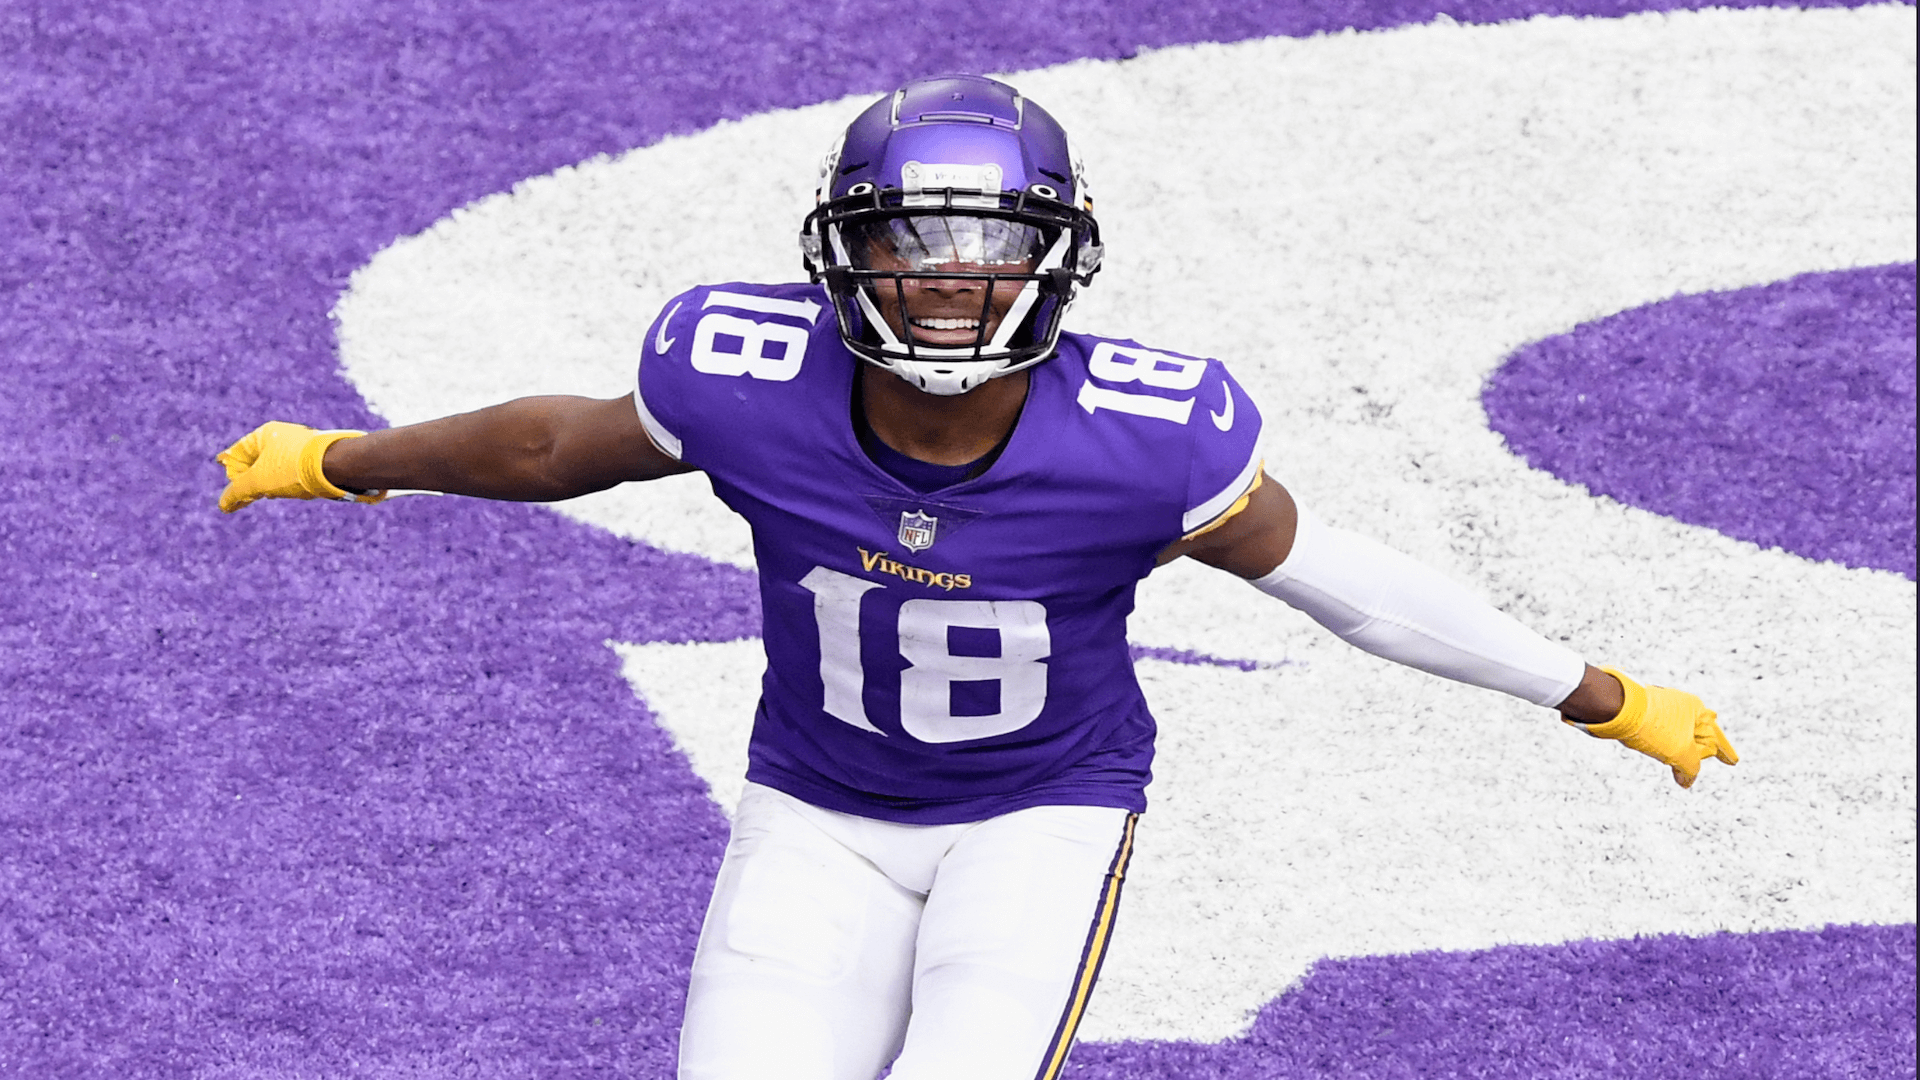 Justin Jefferson is First NFL Player to Feature in Fortnite